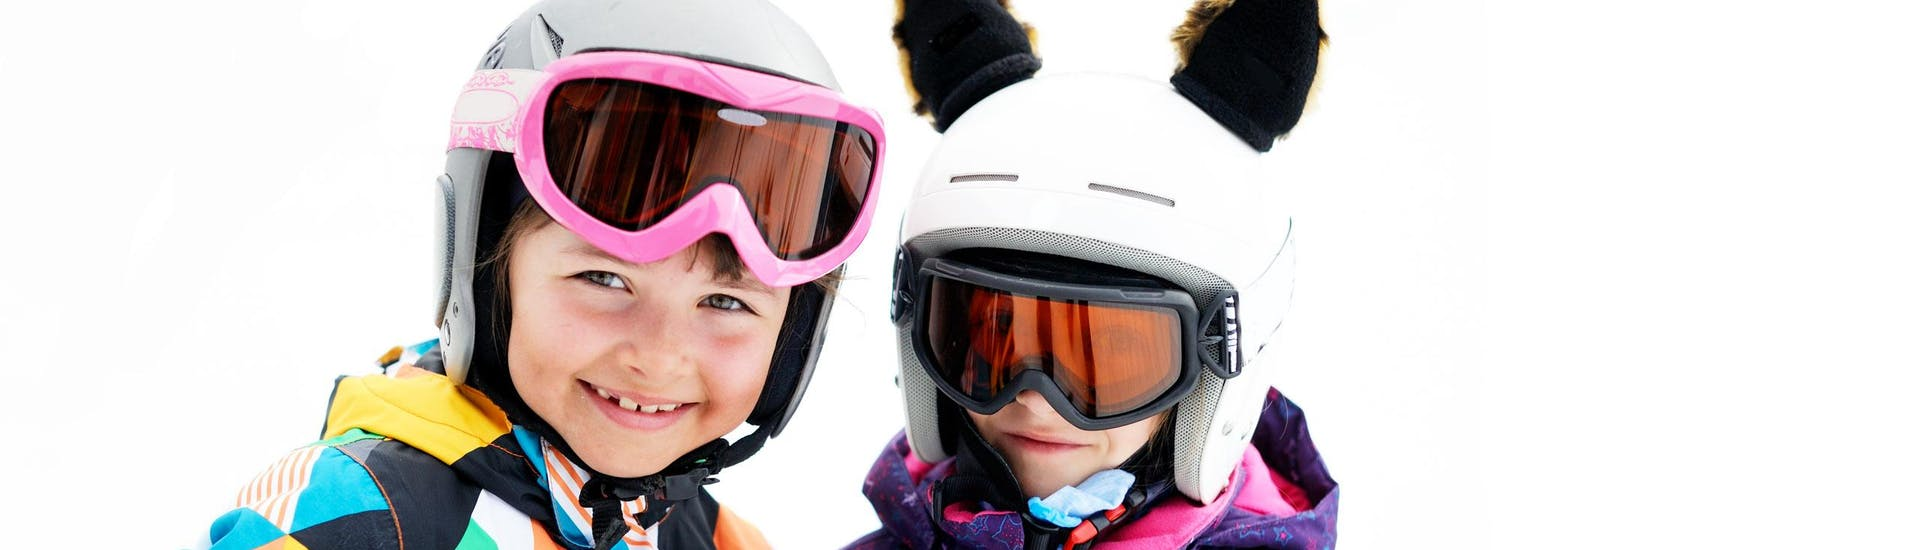 Two young children smiling at the camera during one of the Ski Instructor Private for Kids - All Ages organised by Snow Attitude.